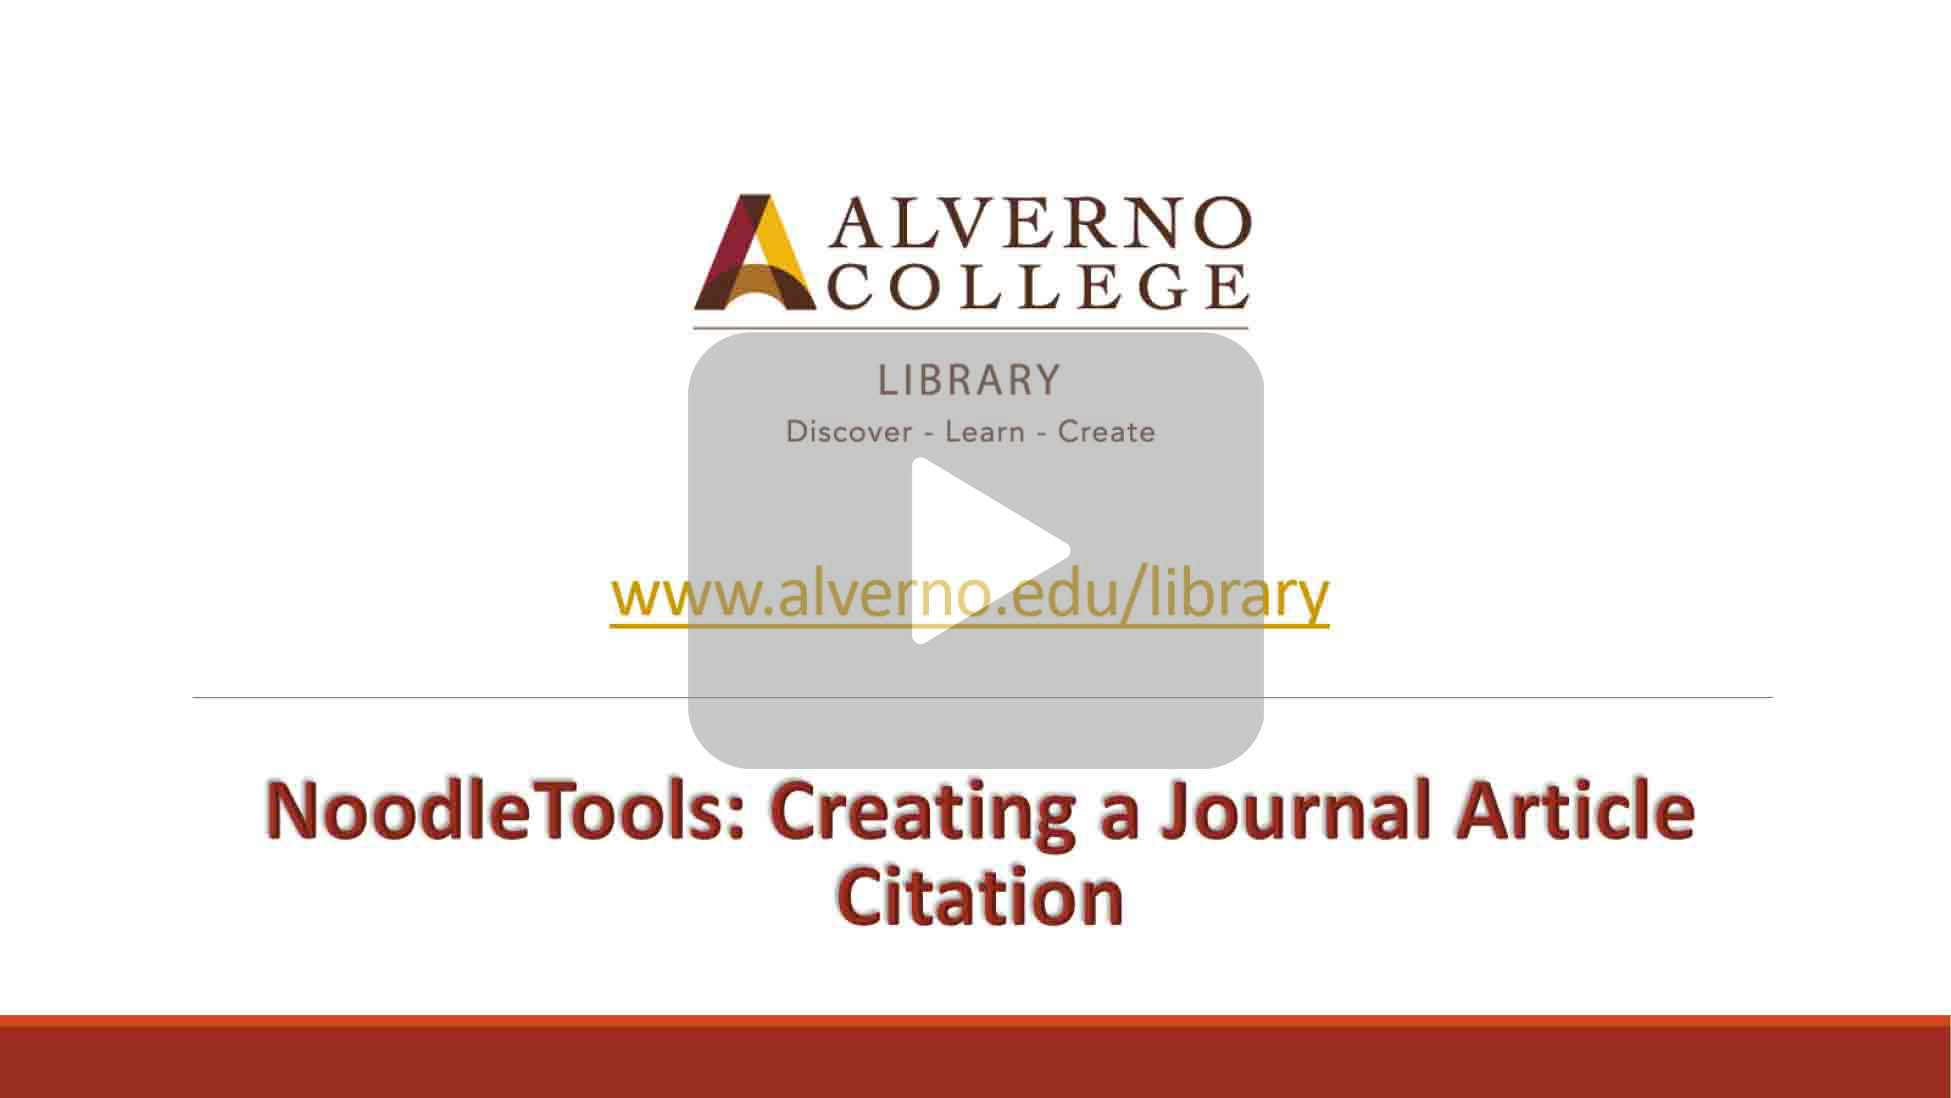 NoodleTools journal citation